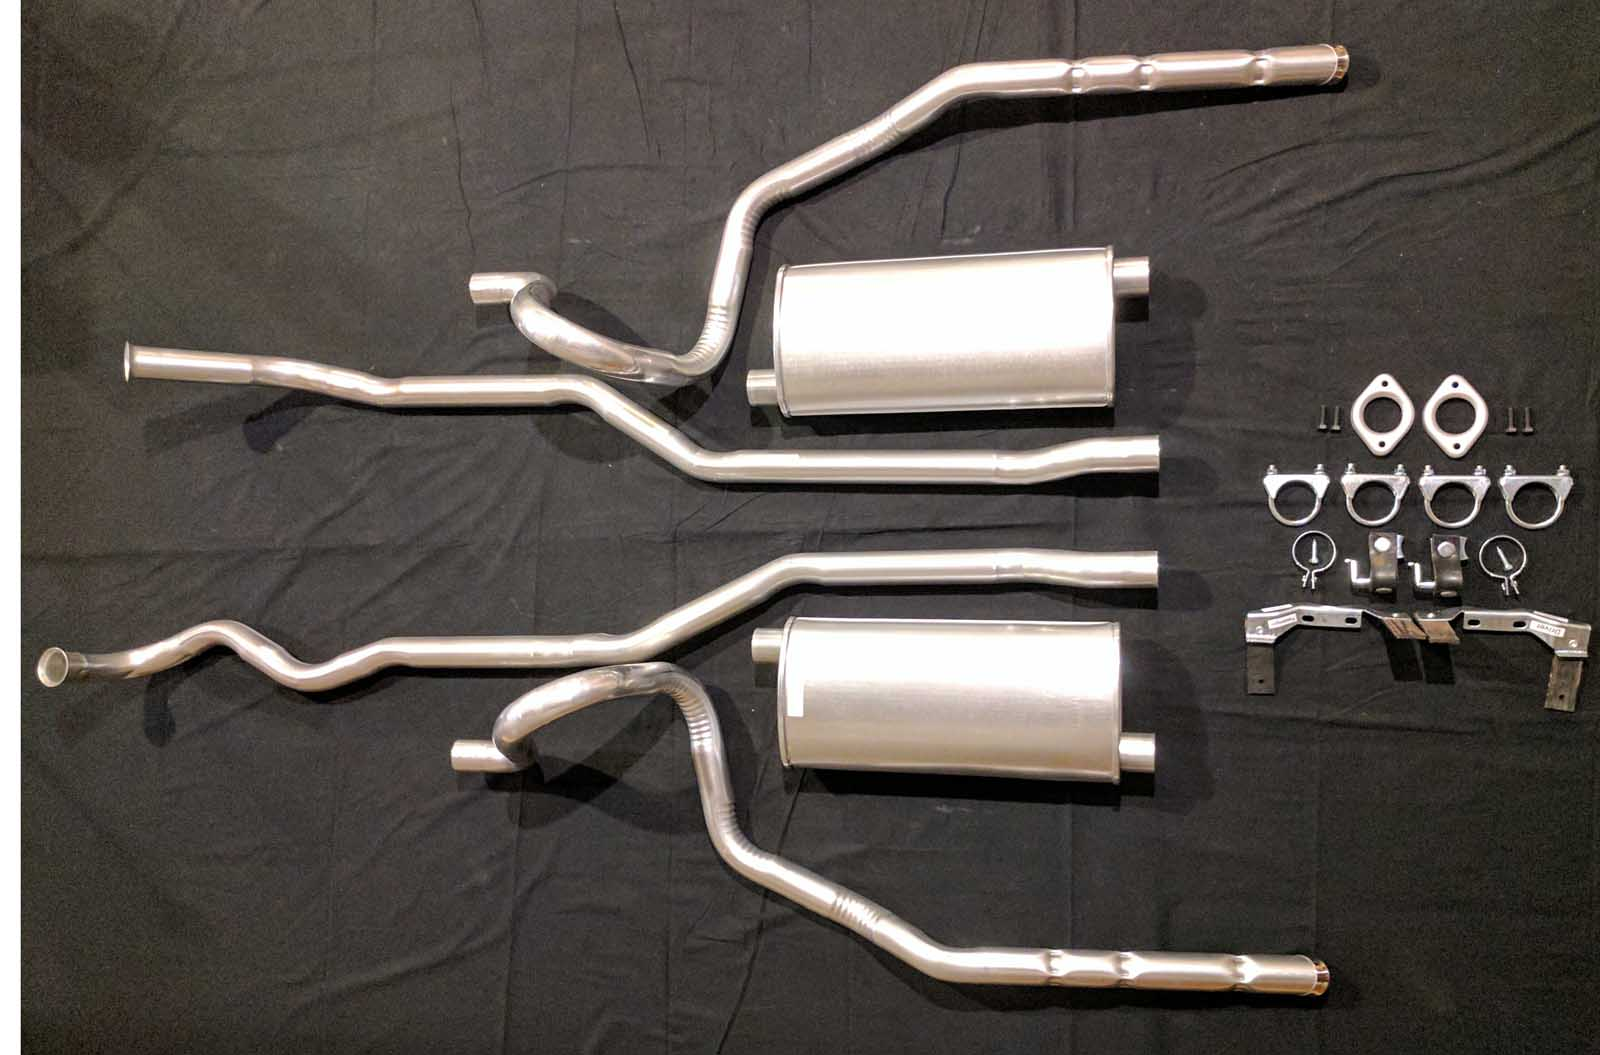 1967 Oldsmobile 442 Exhaust System   Muscle Car Exhaust Systems